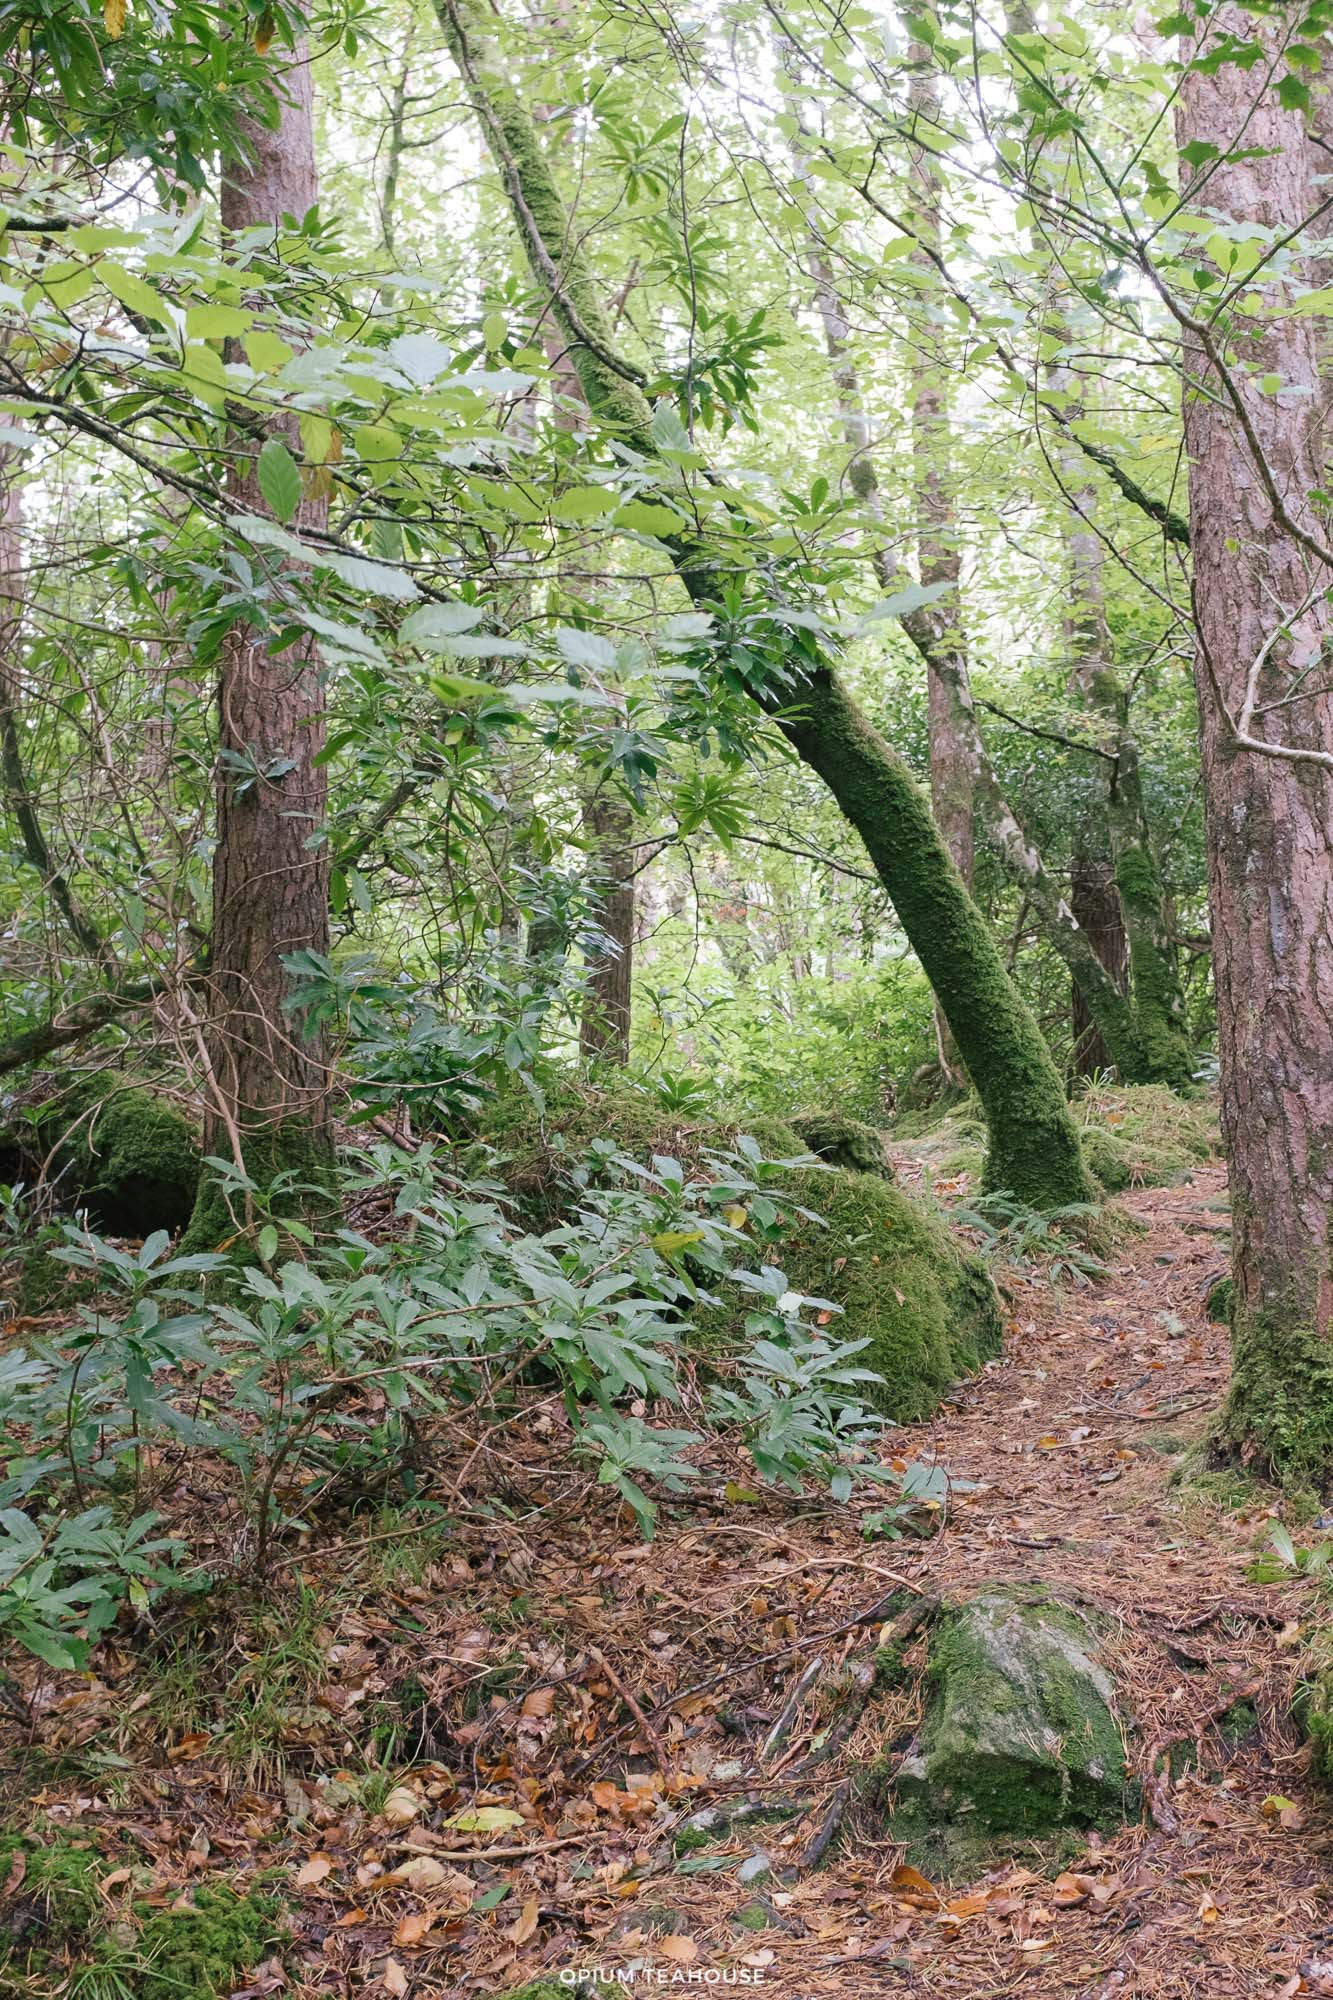 OTH_Ring of Beara Glengarriff Woods.jpg